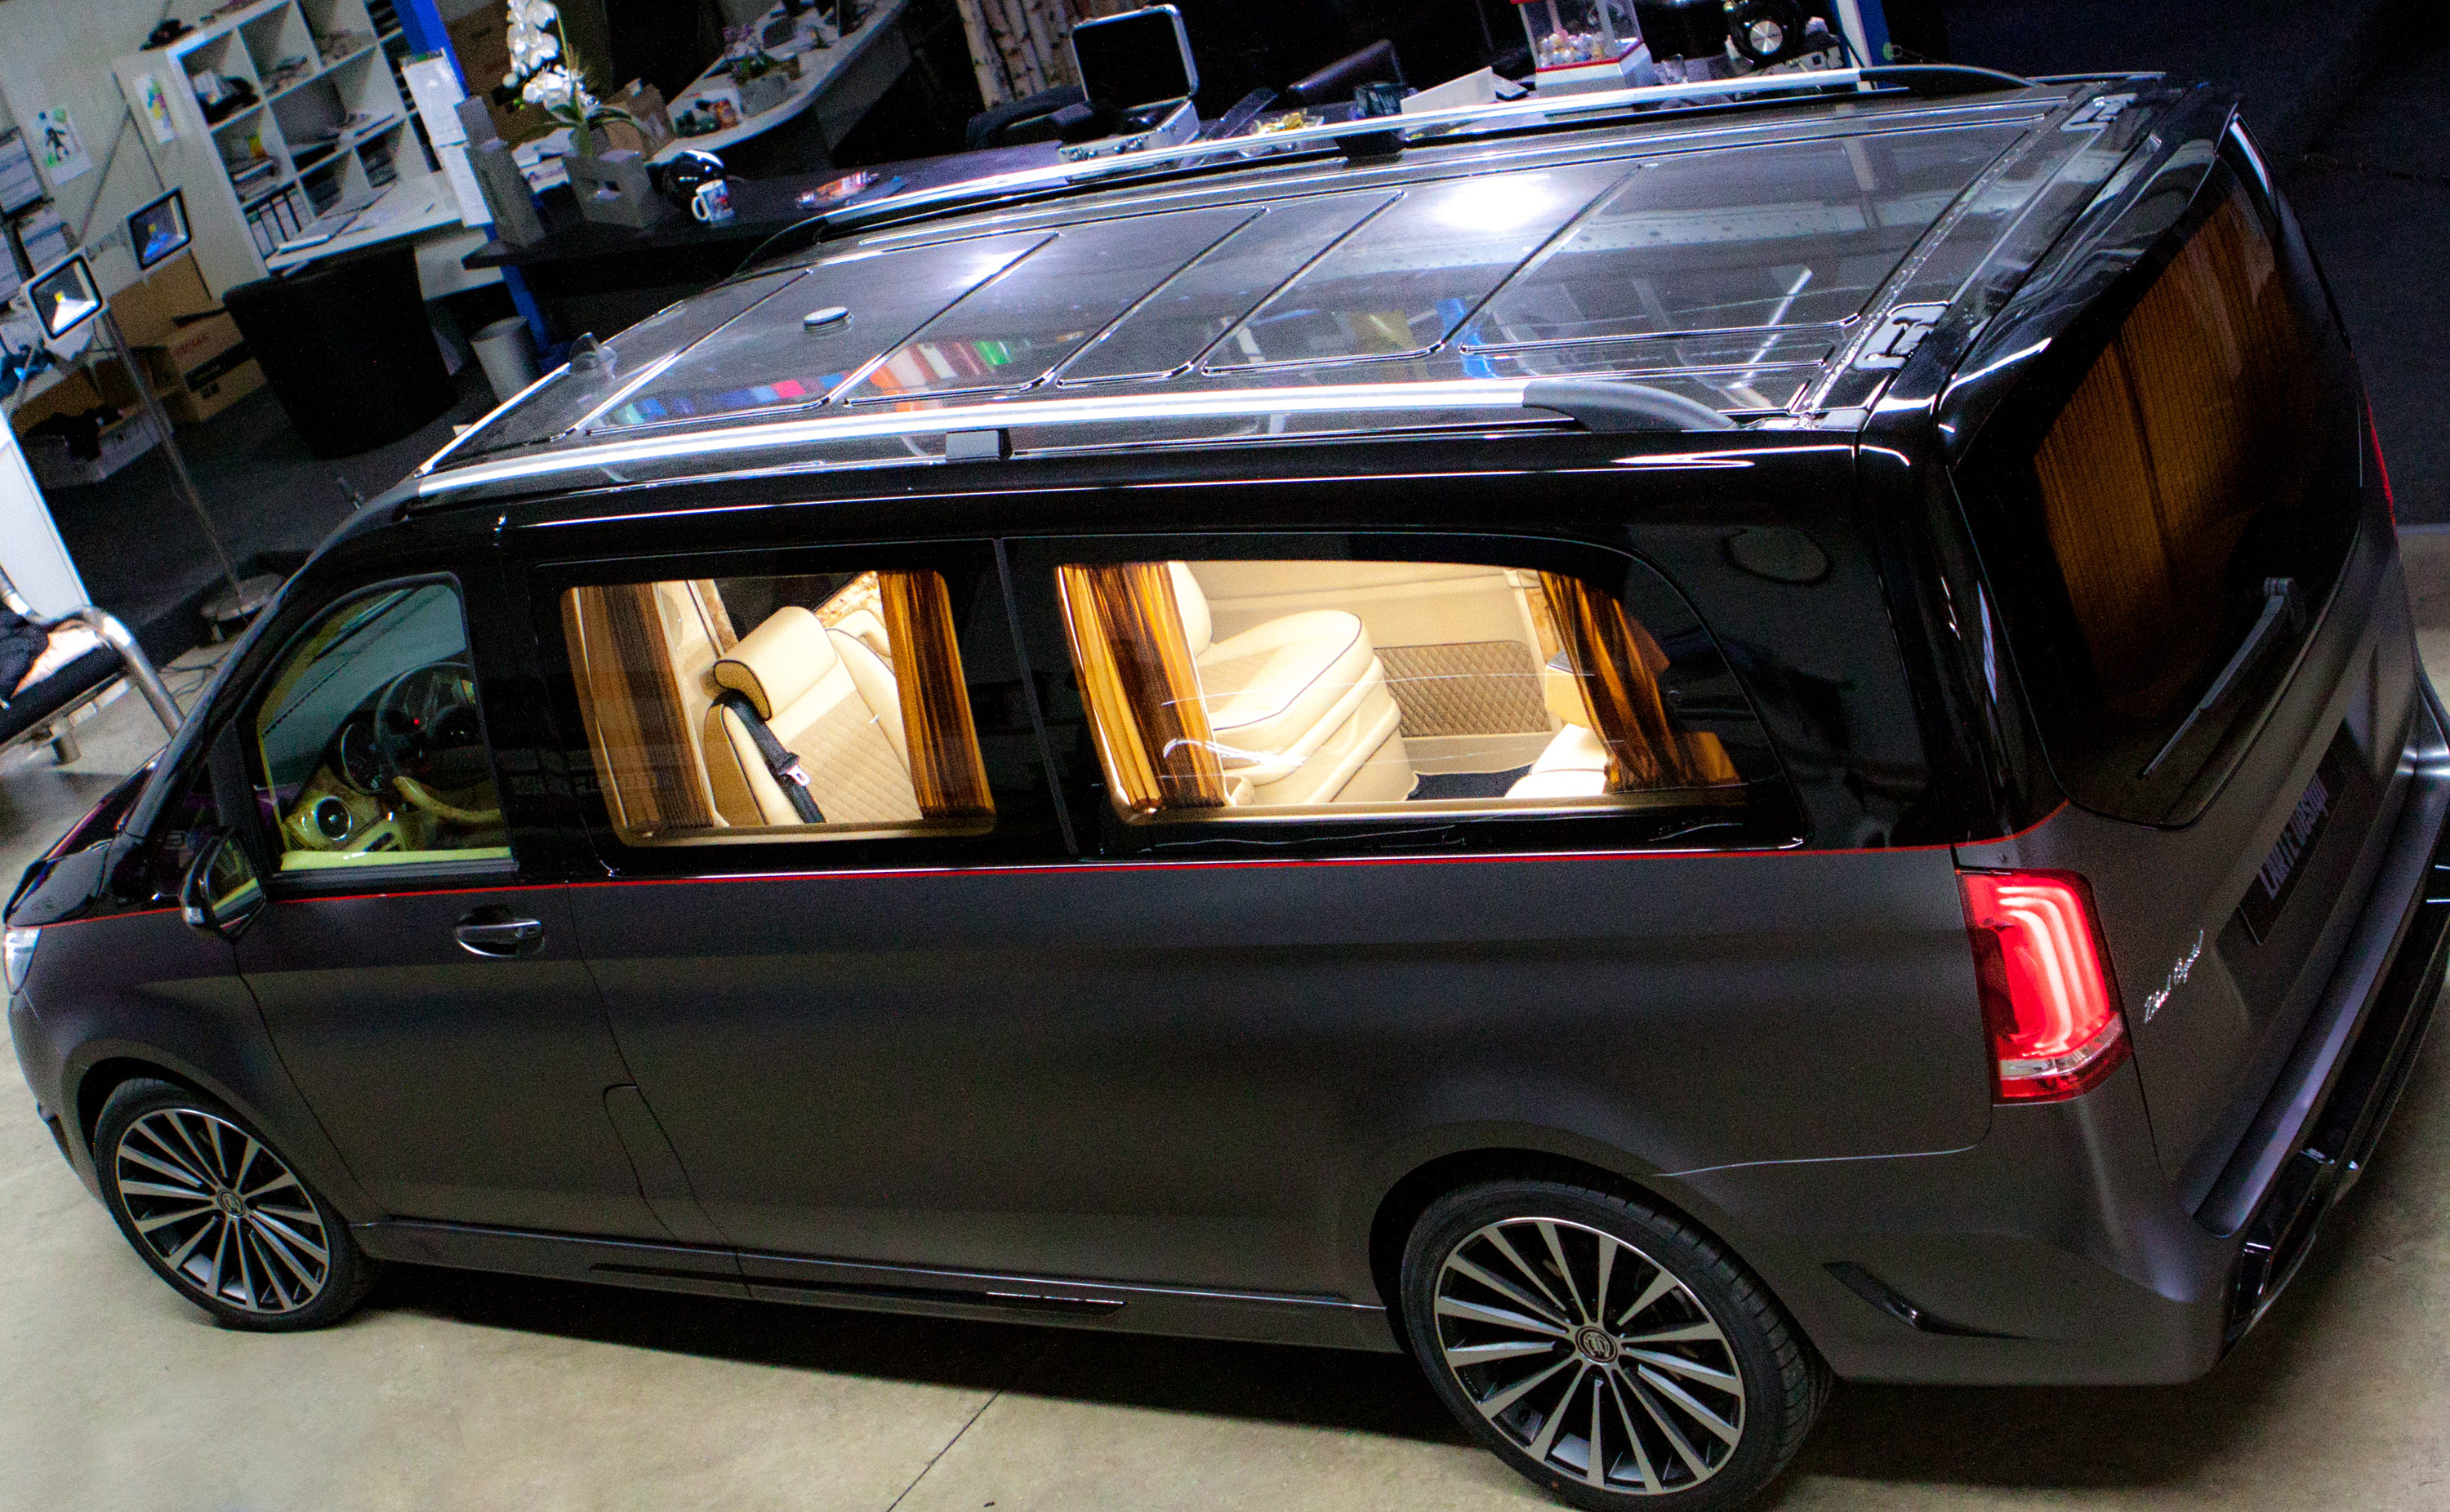 larte design reveals the exterior of mercedes benz v class black crystal. Black Bedroom Furniture Sets. Home Design Ideas